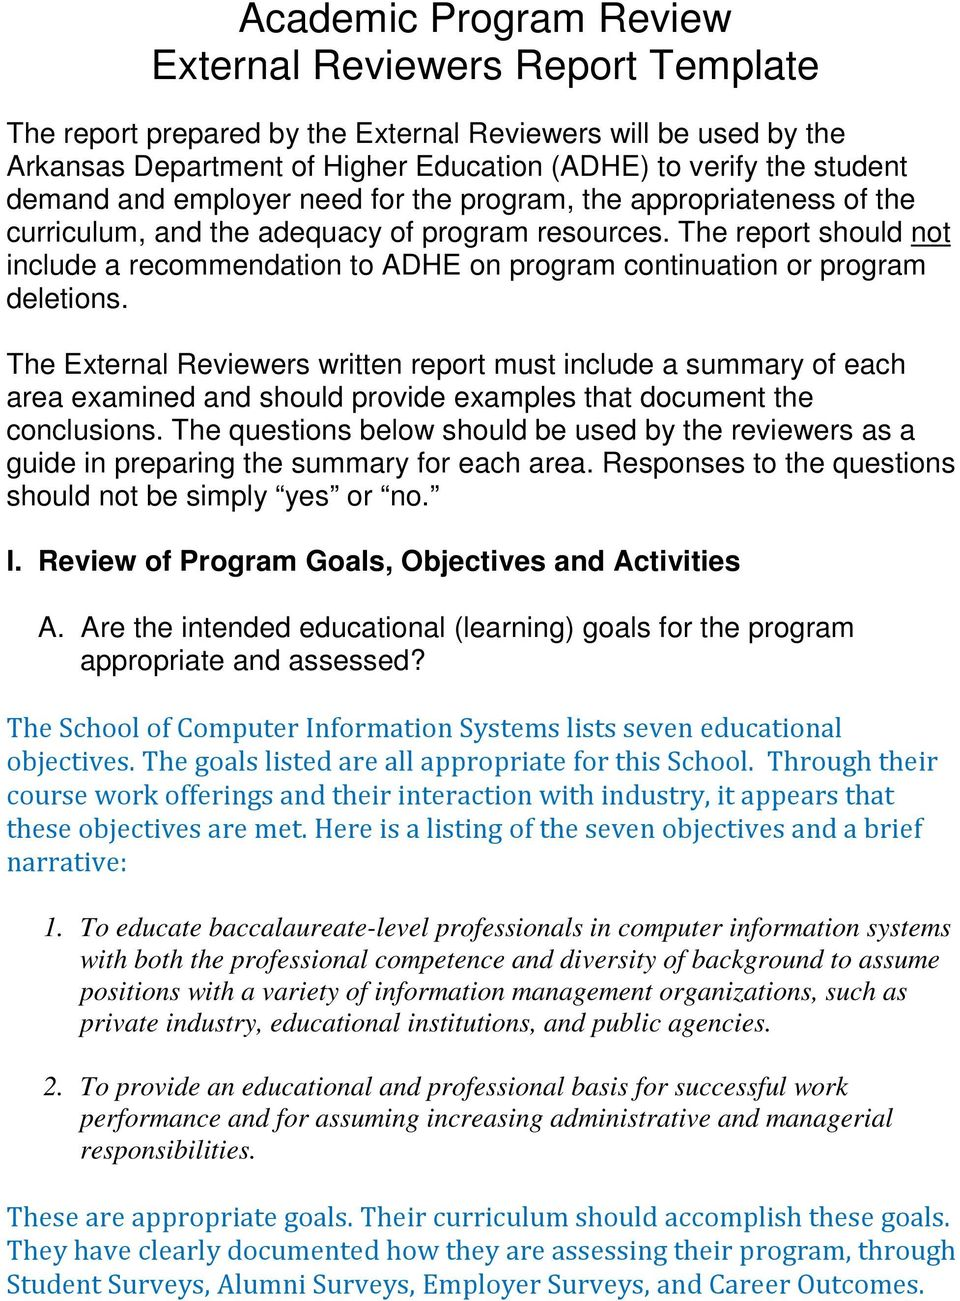 The report should not include a recommendation to ADHE on program continuation or program deletions.